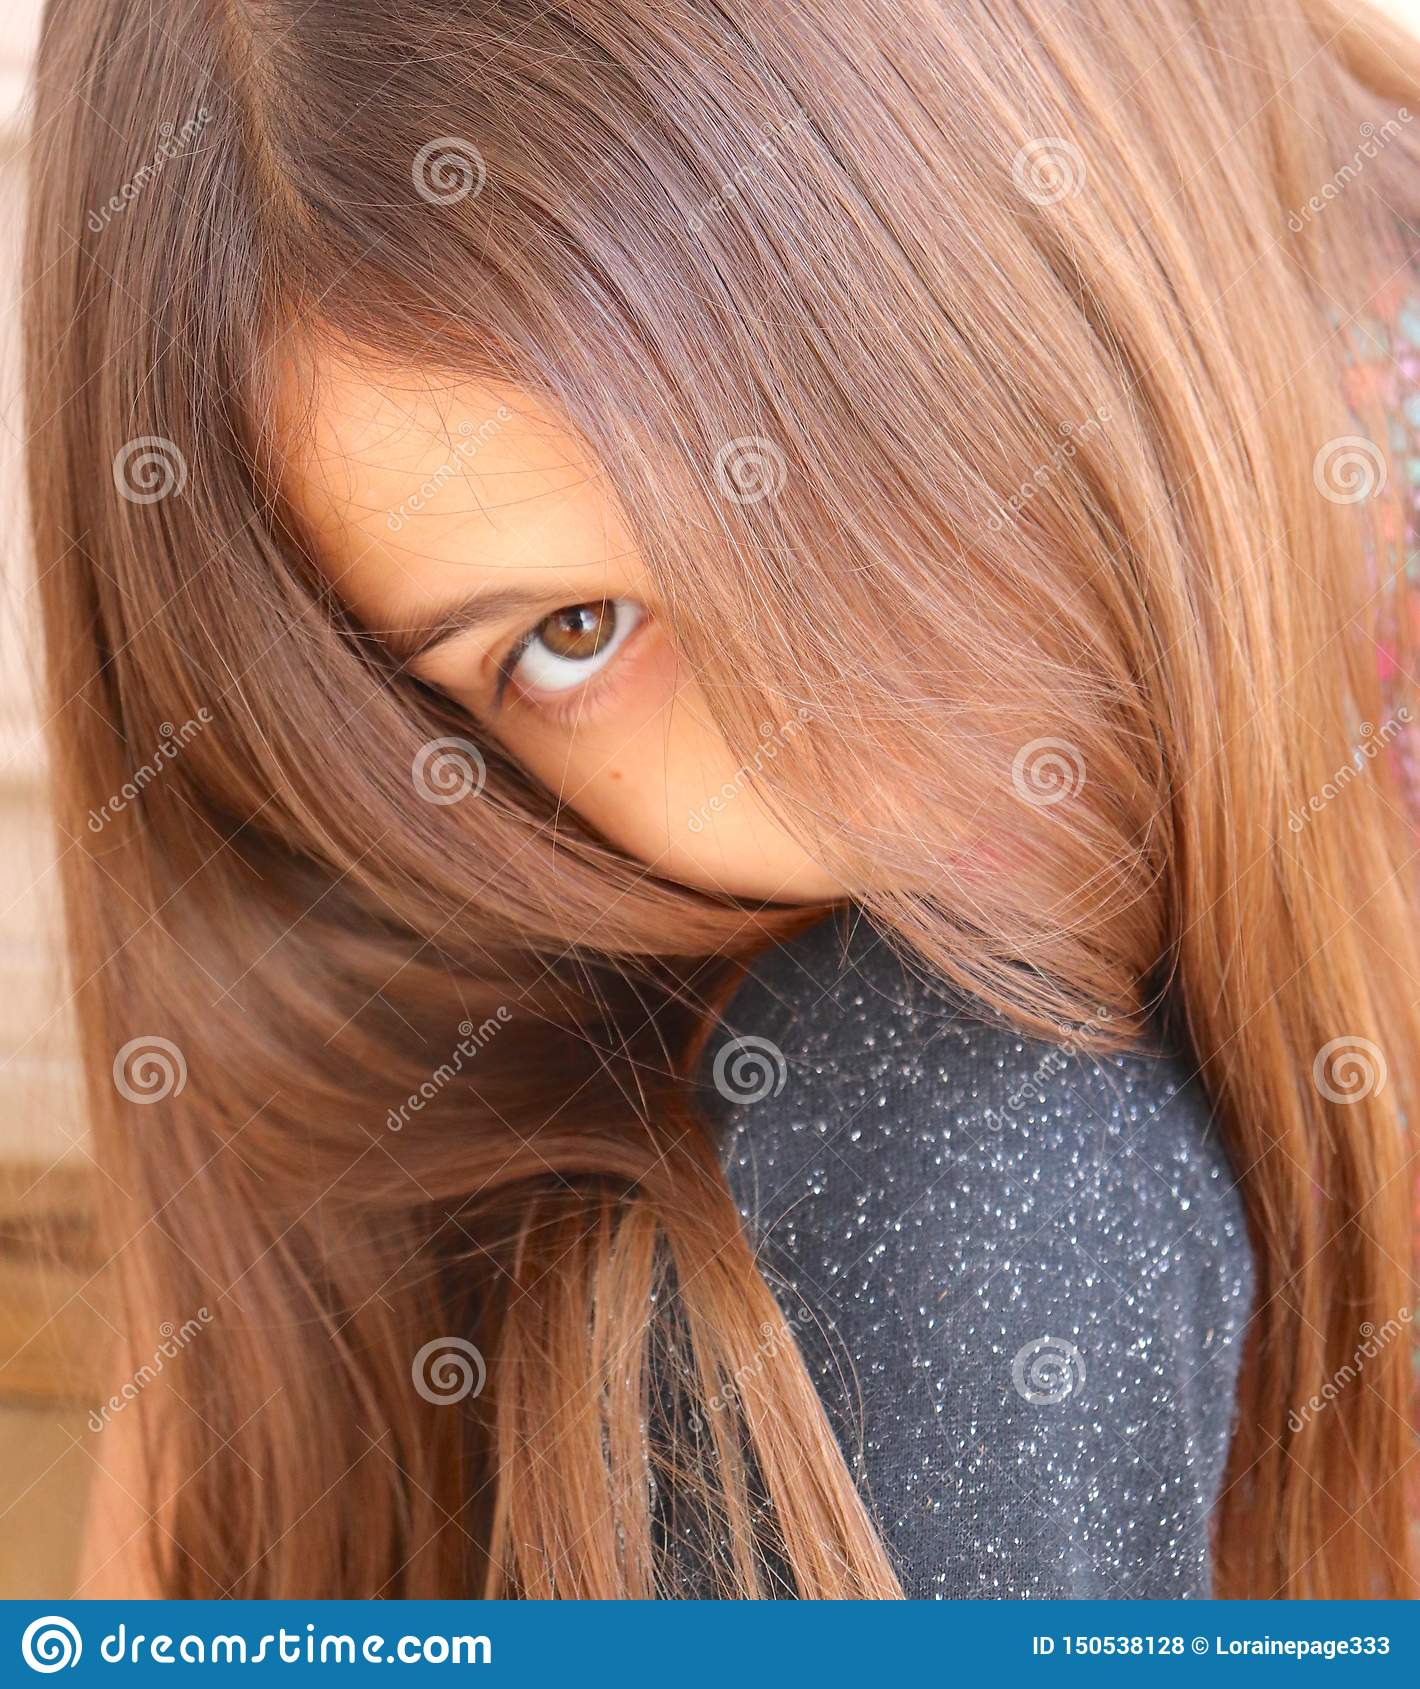 Hair on Young Girl Brushed Softly